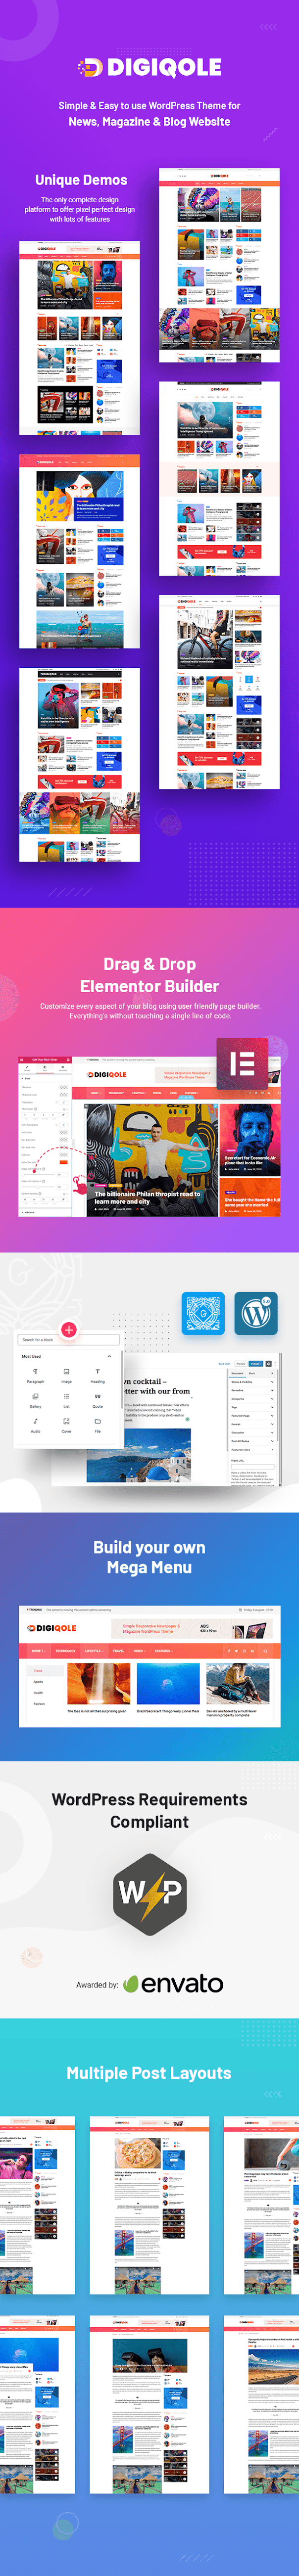 News Magazine WordPress Responsive Theme - Digiqole